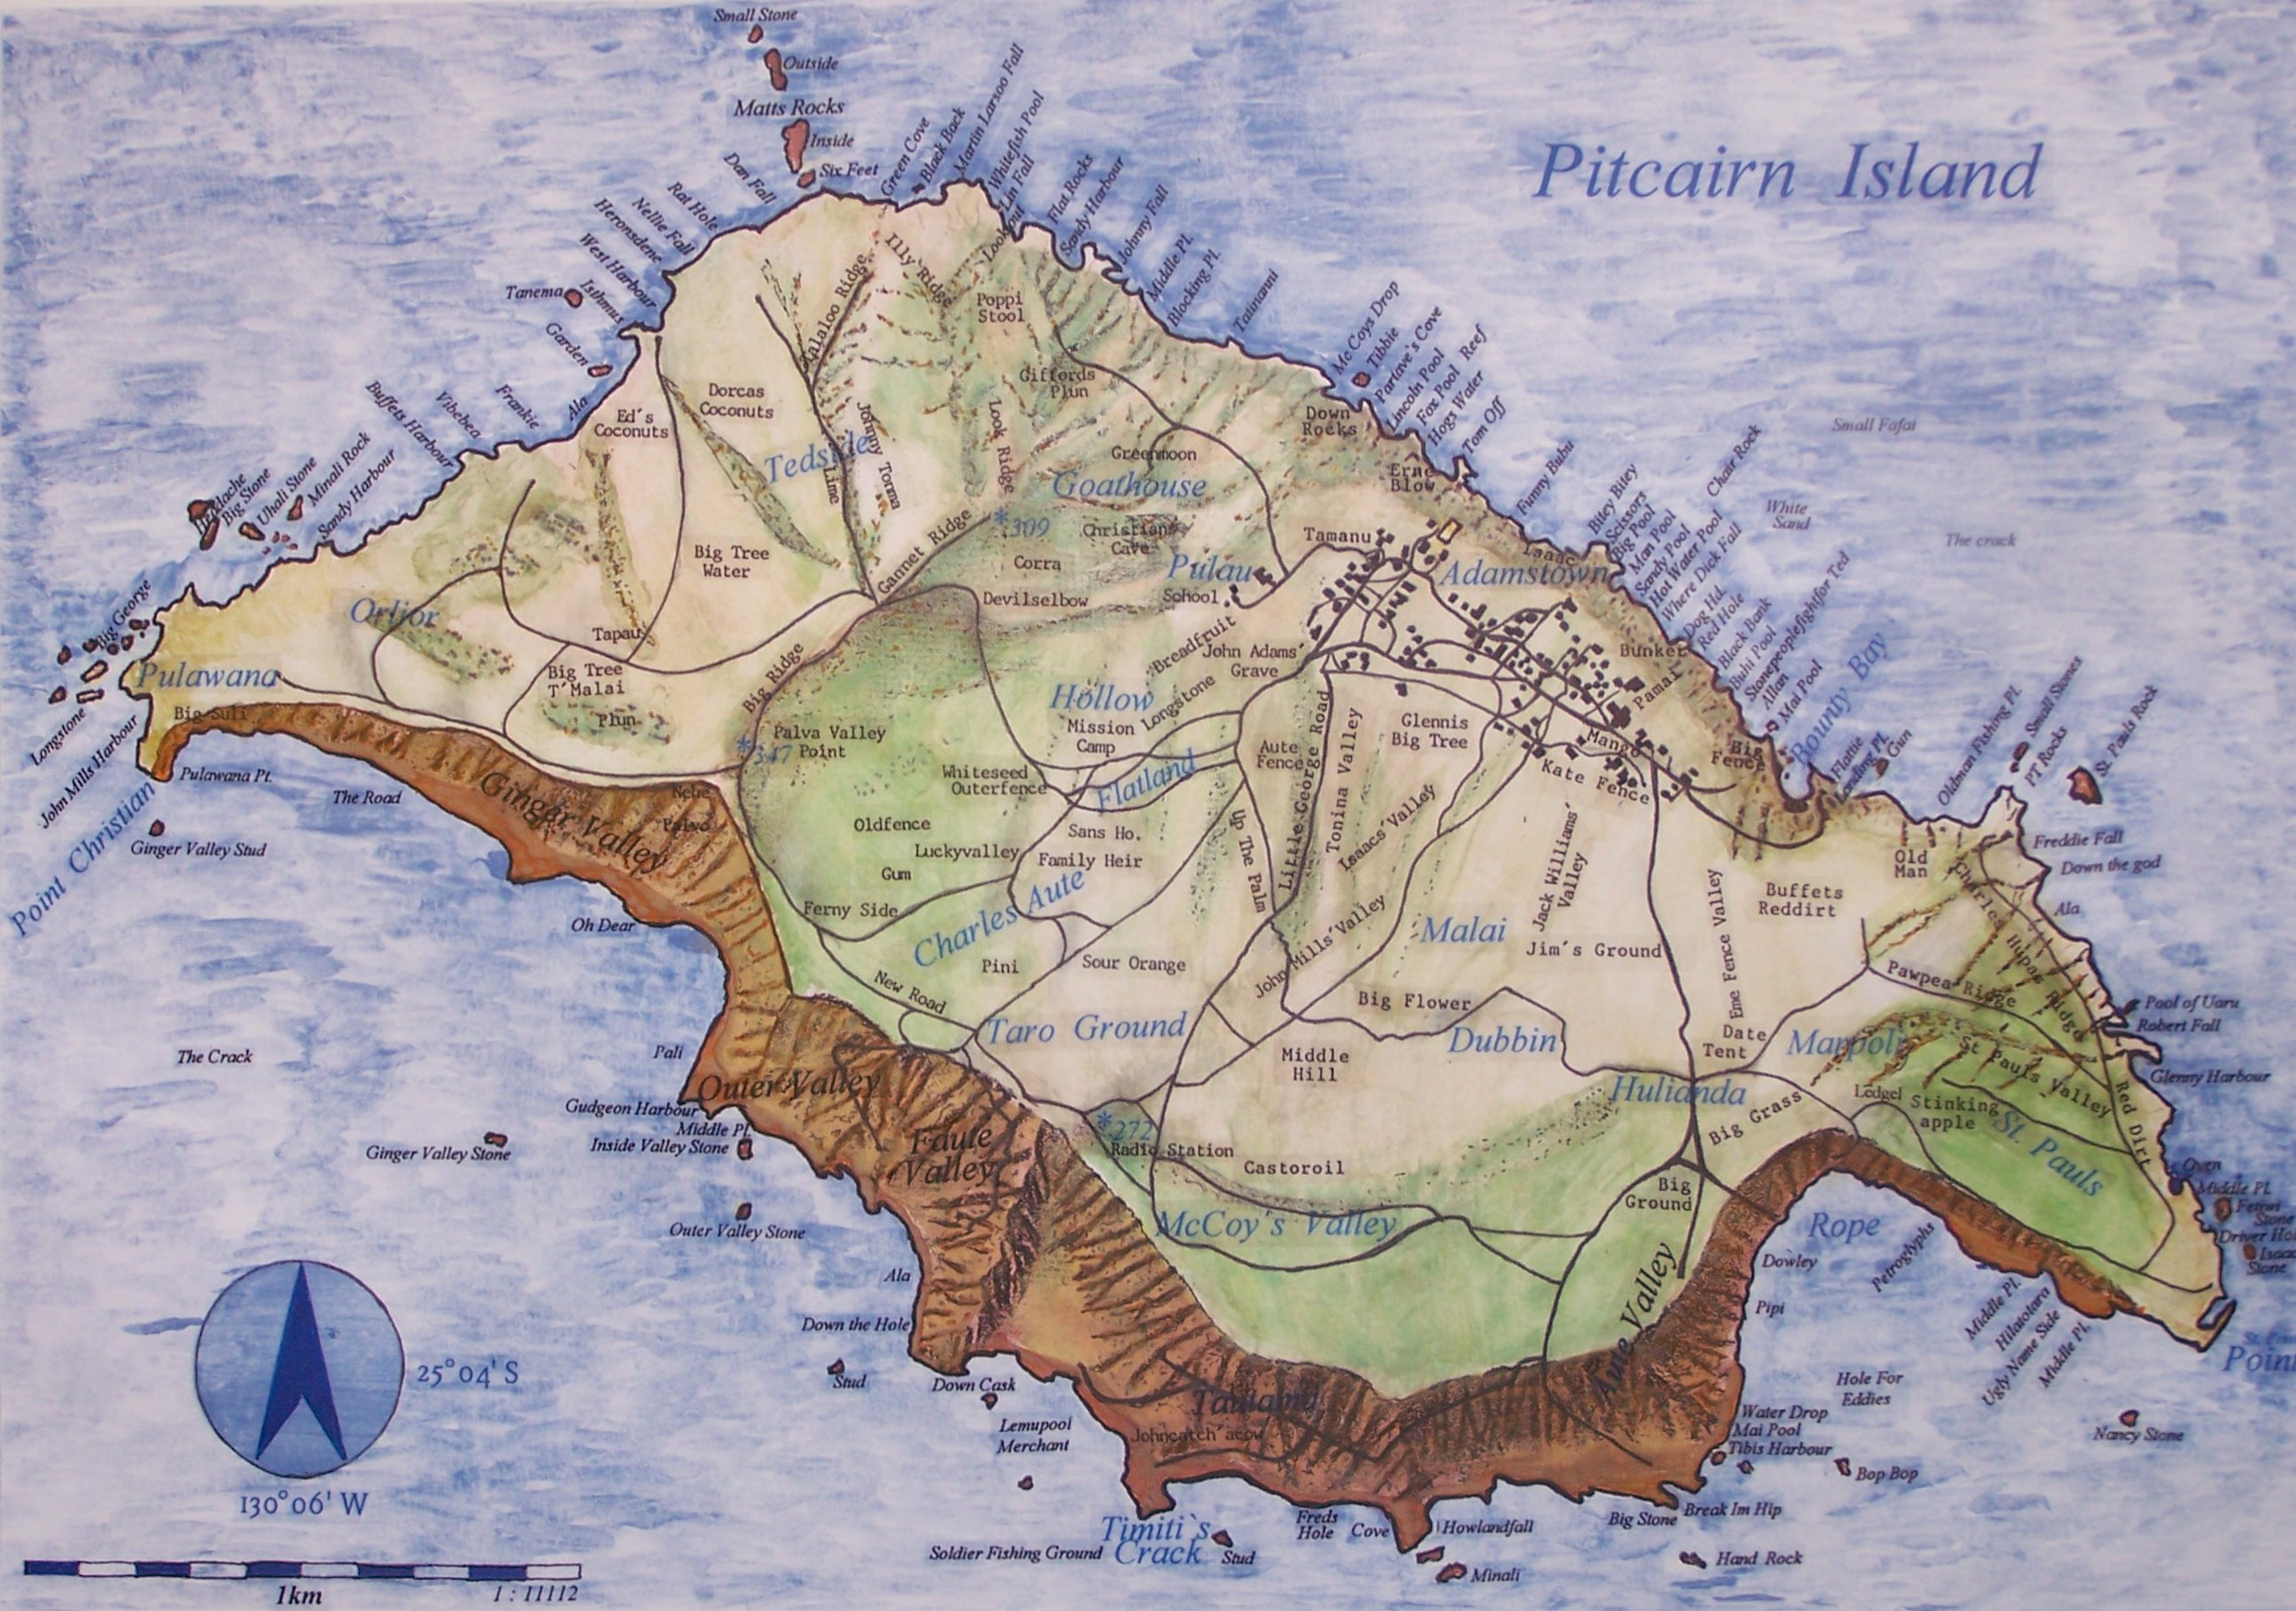 CharterWorld Pitcairn Islands Yacht Charter Vacations In The South - Pitcairn island one beautiful places earth